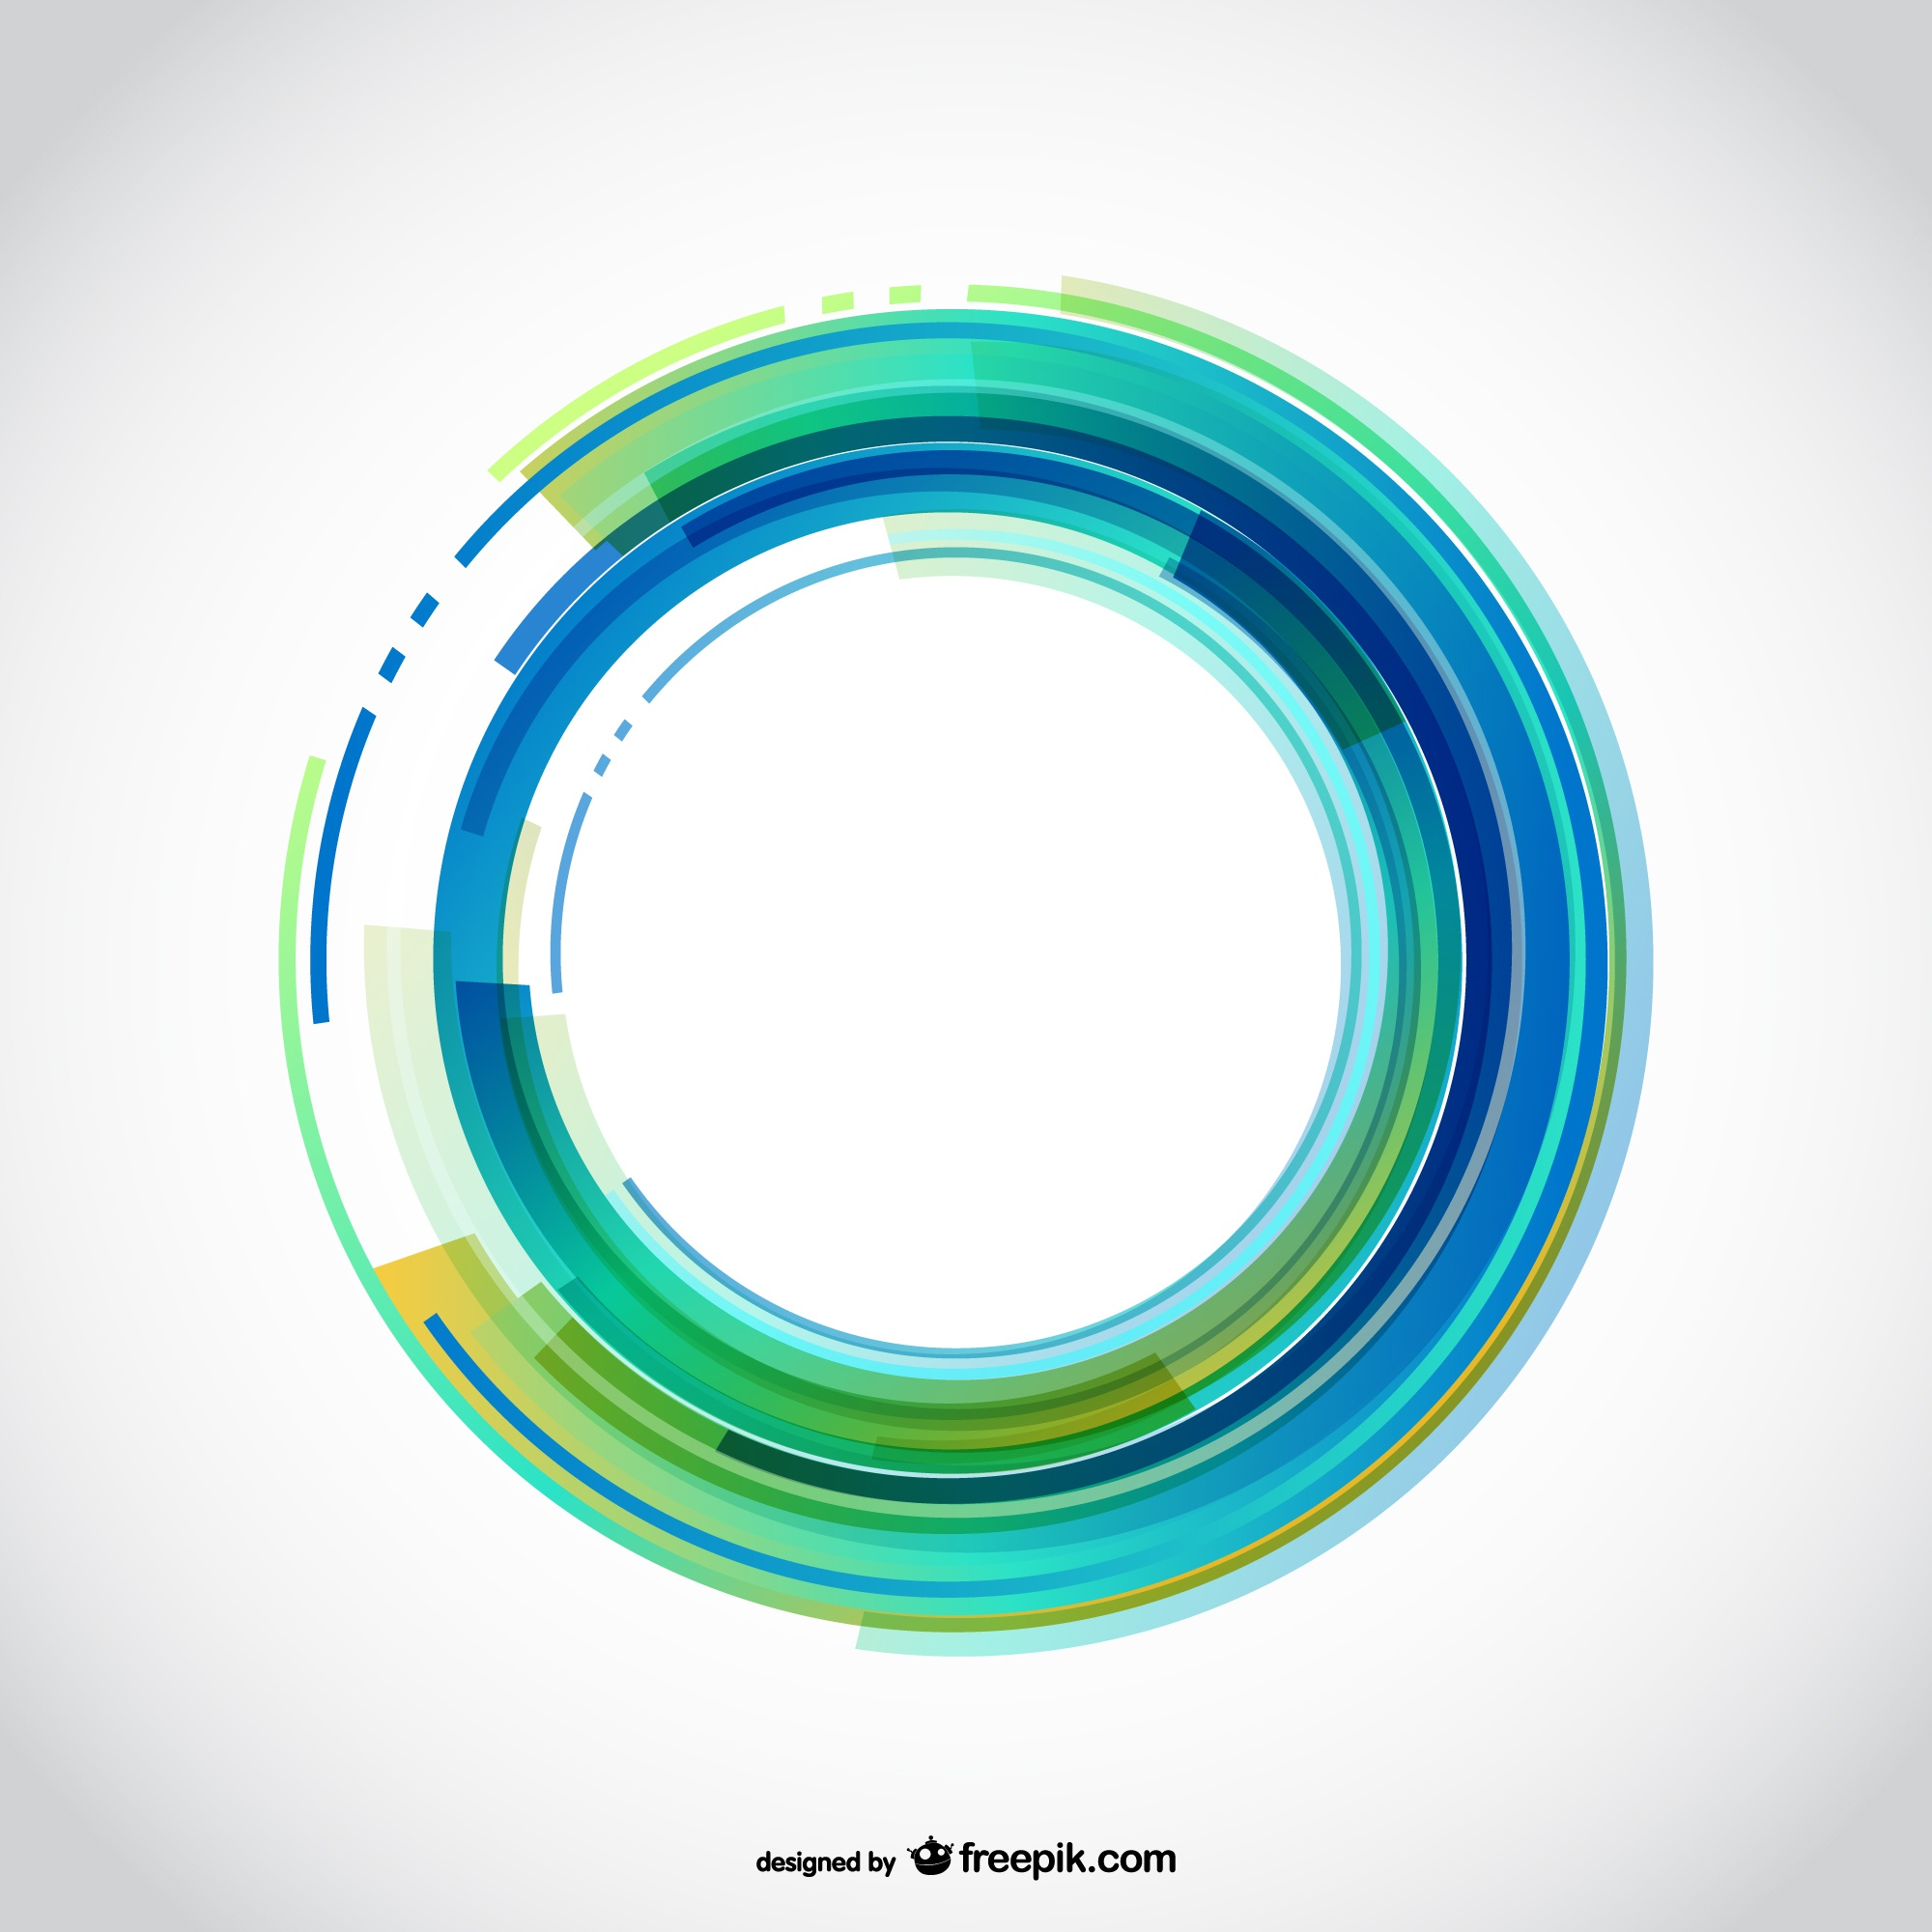 Background with abstract circle